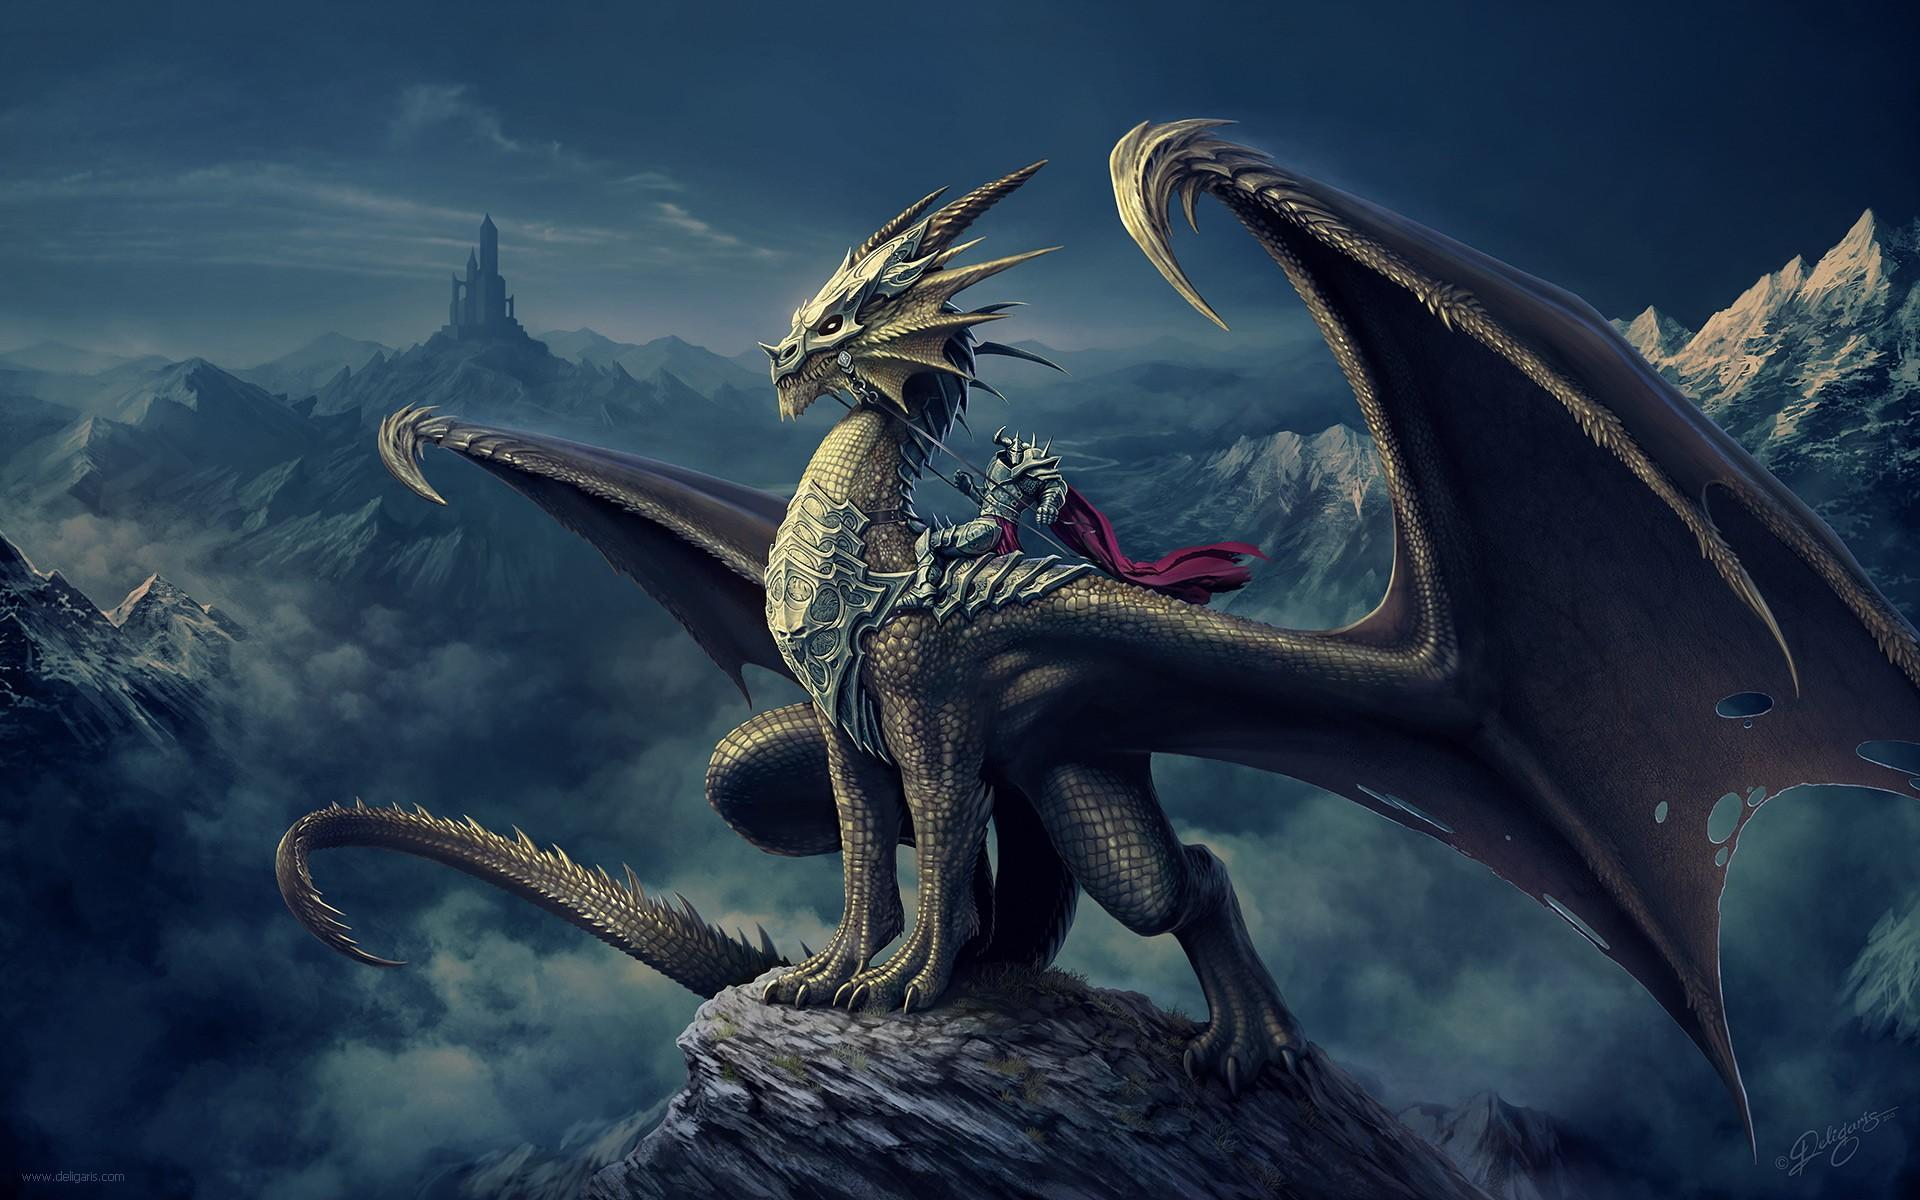 would you rather? #5 be a dragon or a alacorn (horse with wings and horn.)